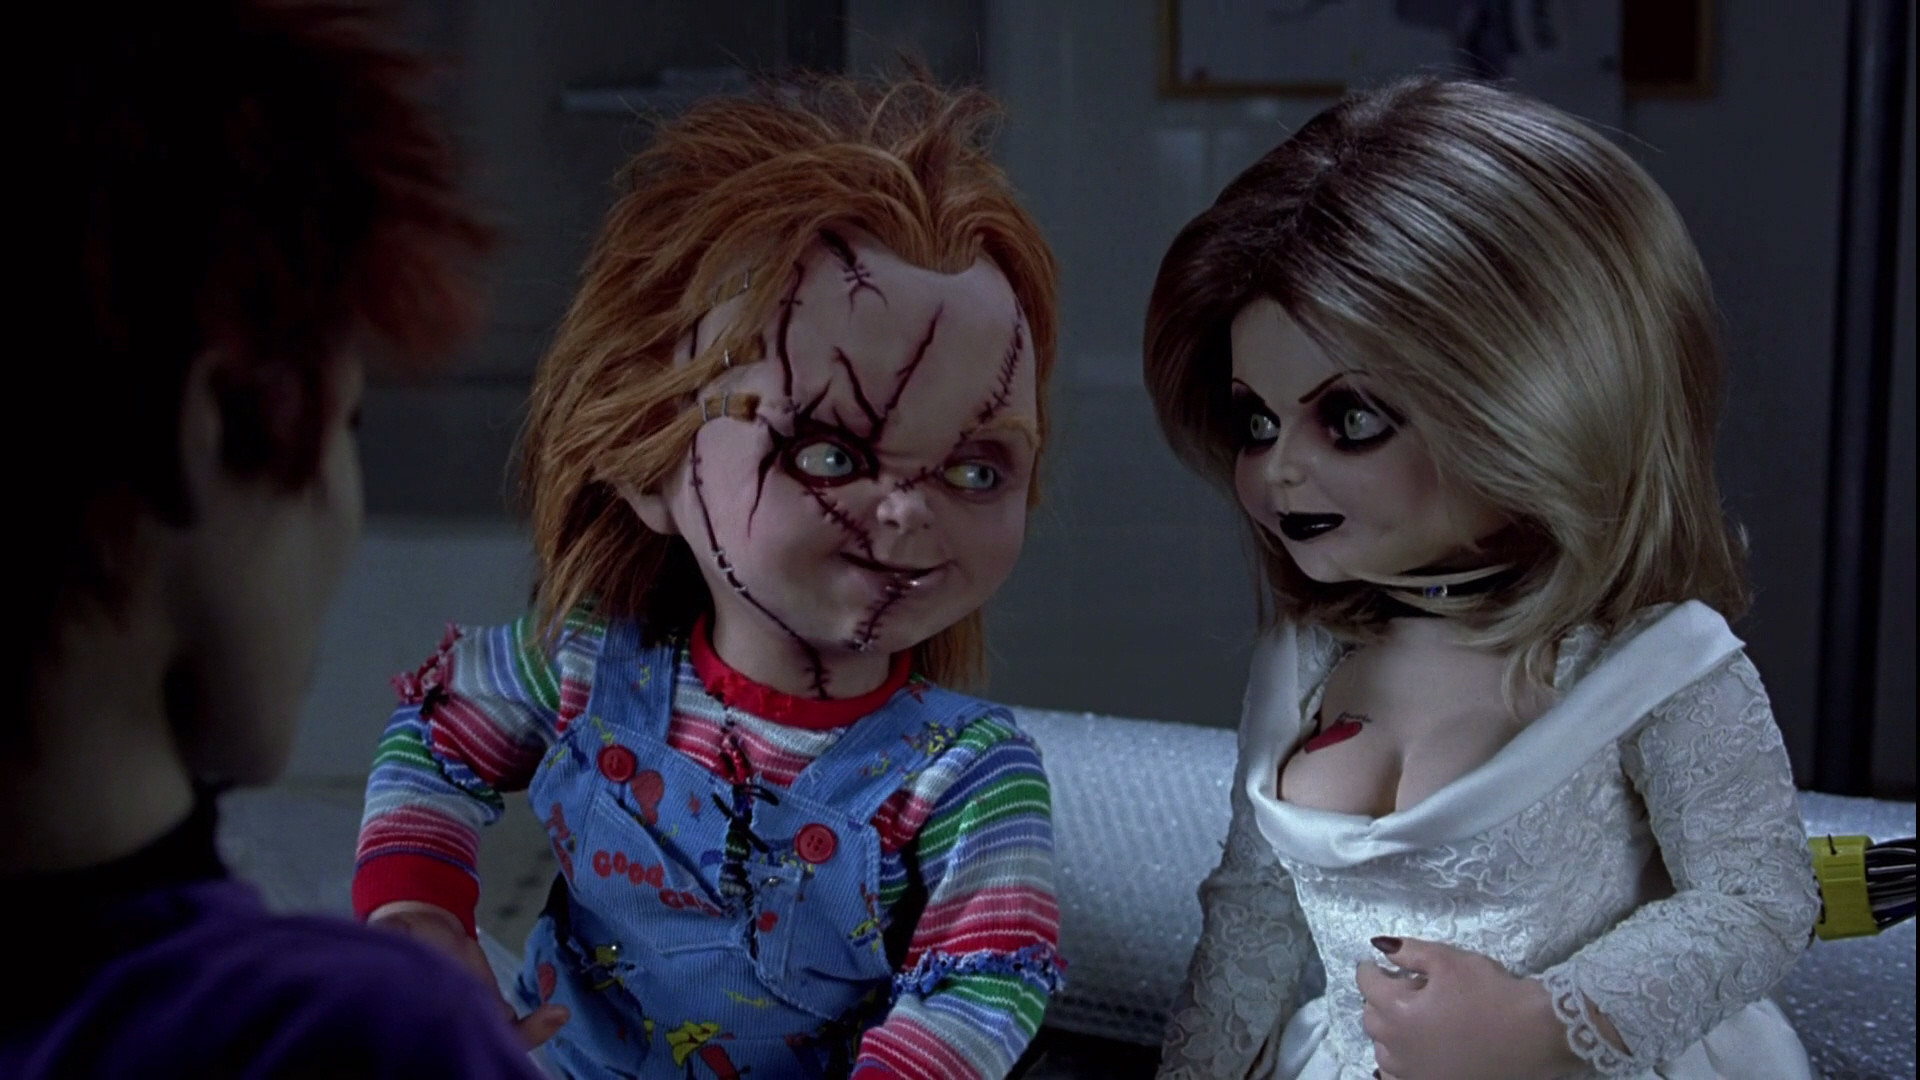 1920x1080 Seed Of Chucky 1st Images Tiffany HD Wallpaper And Background Photos